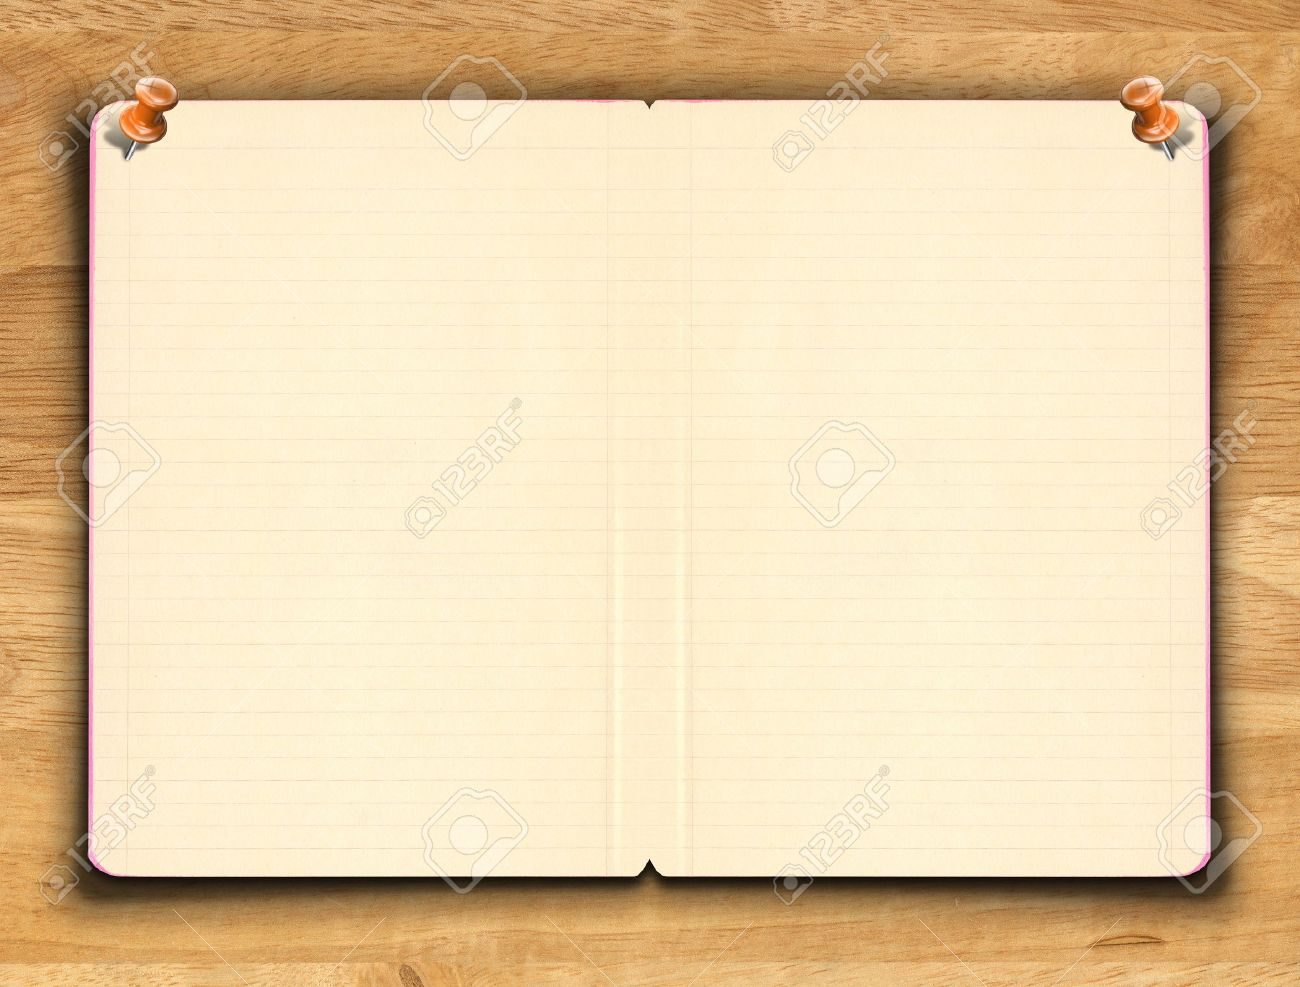 blank notebook paper with line on the wooden background stock photo